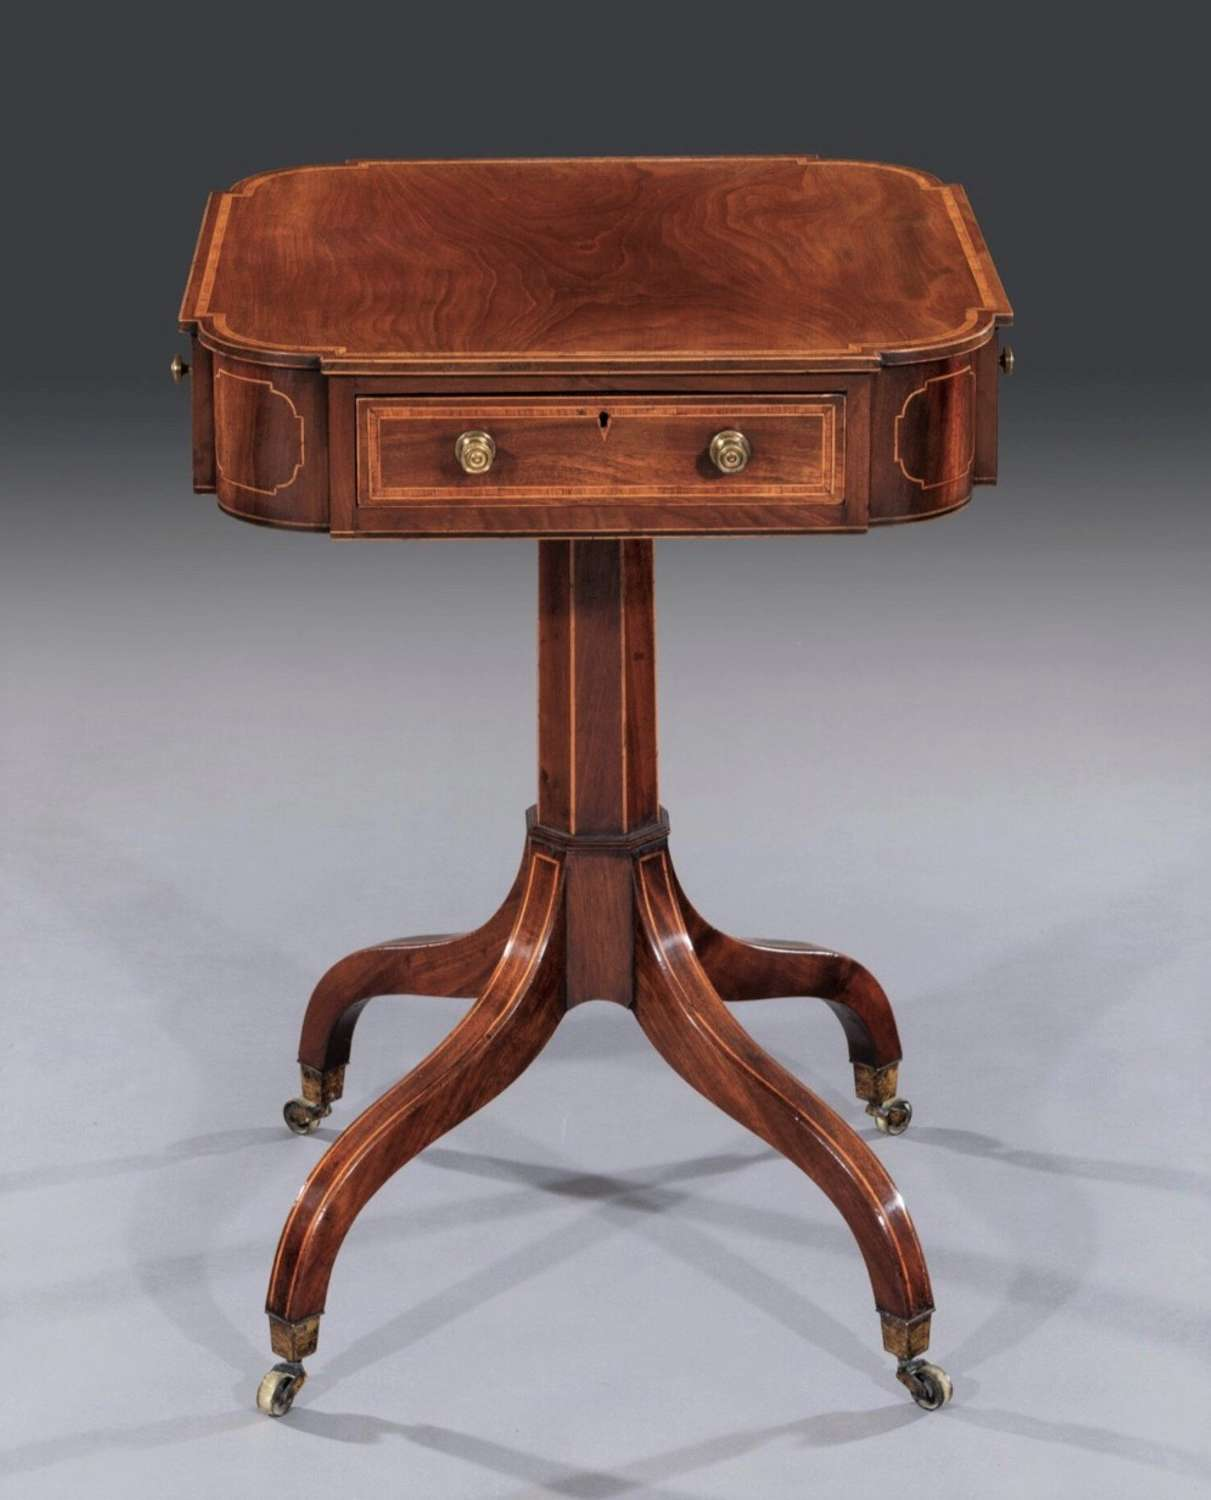 George III Sheraton mahogany occasional table / centre table